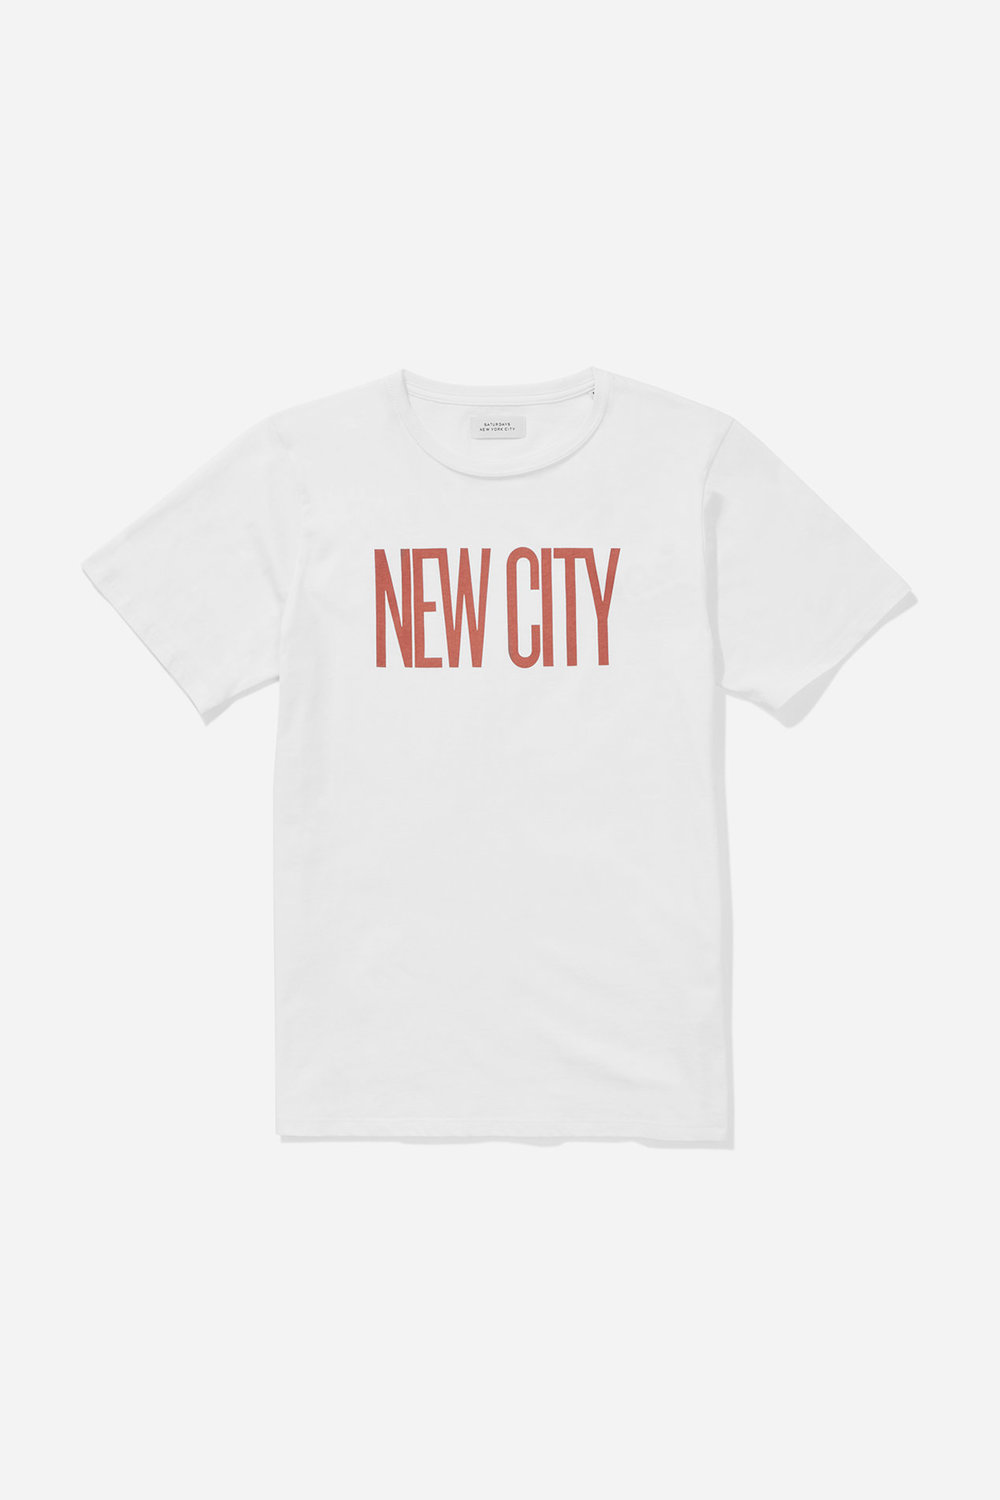 Saturday's New City Tee $48